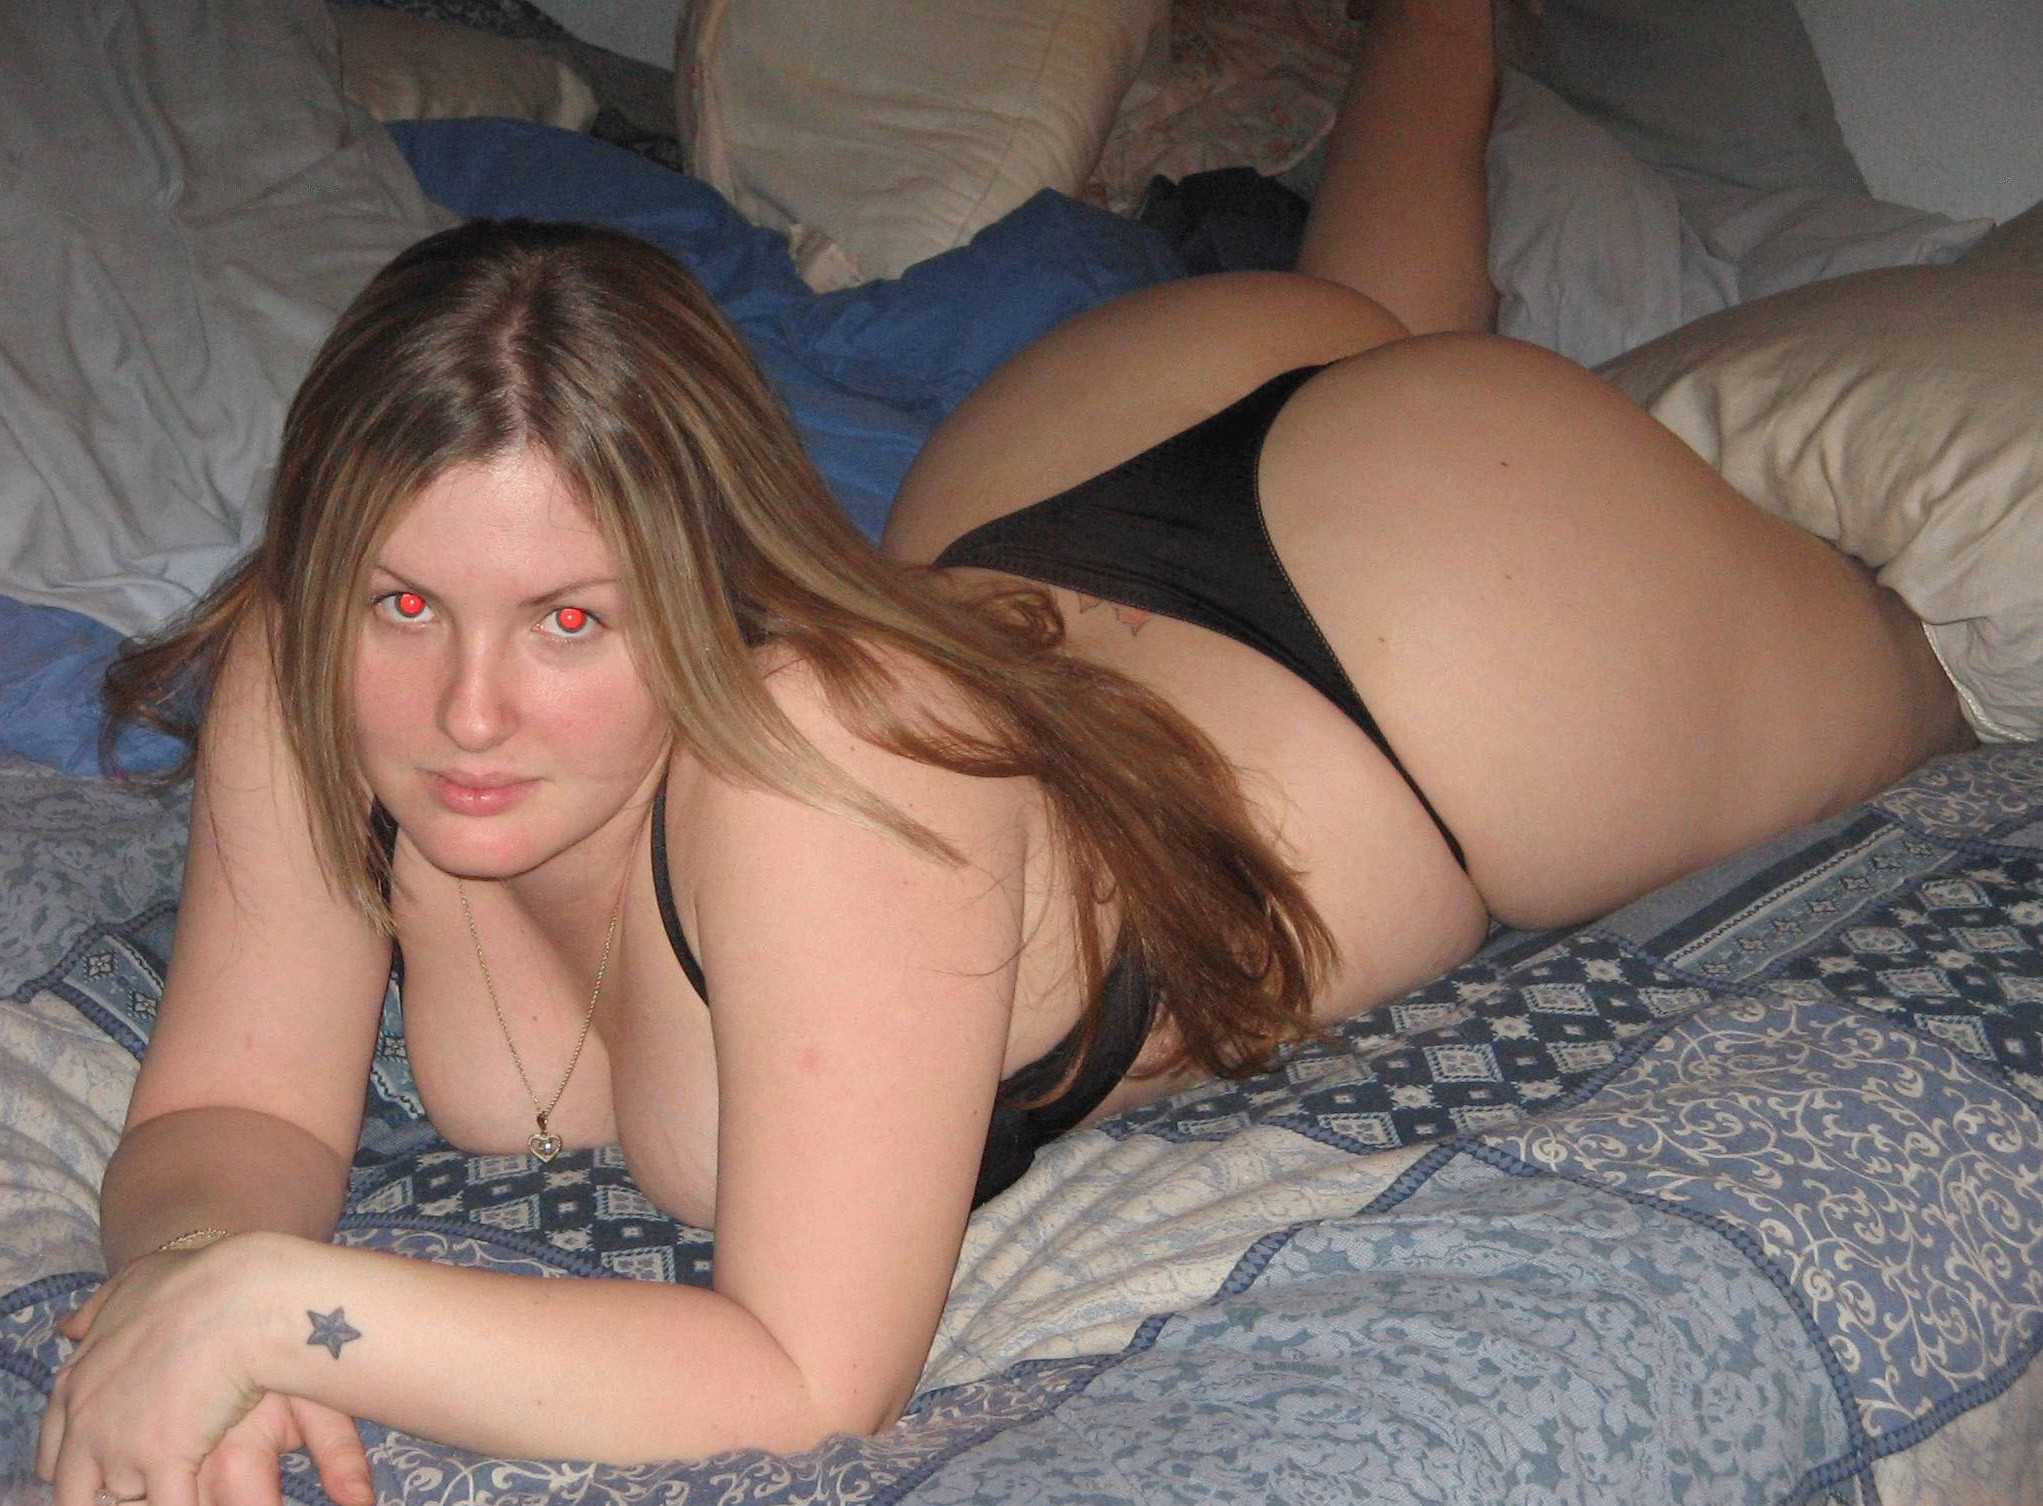 Gangbang archive wild swinger orgy swapping wives